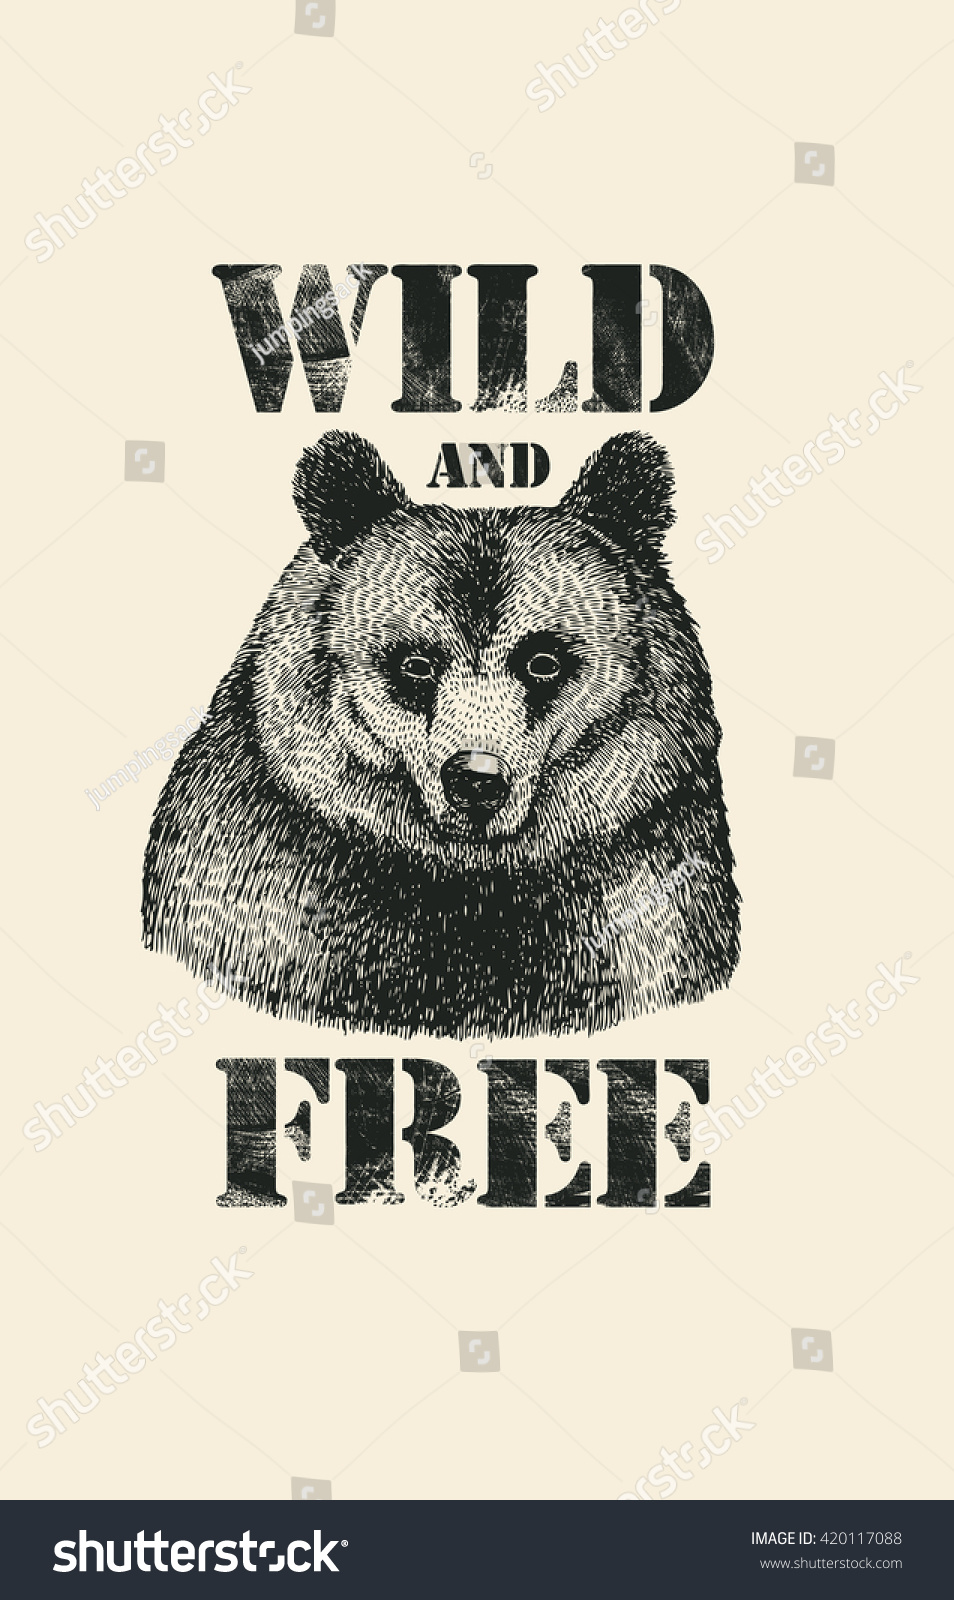 Free poster design and print - Retro Design Wild And Free For Poster Or T Shirt Print With Hand